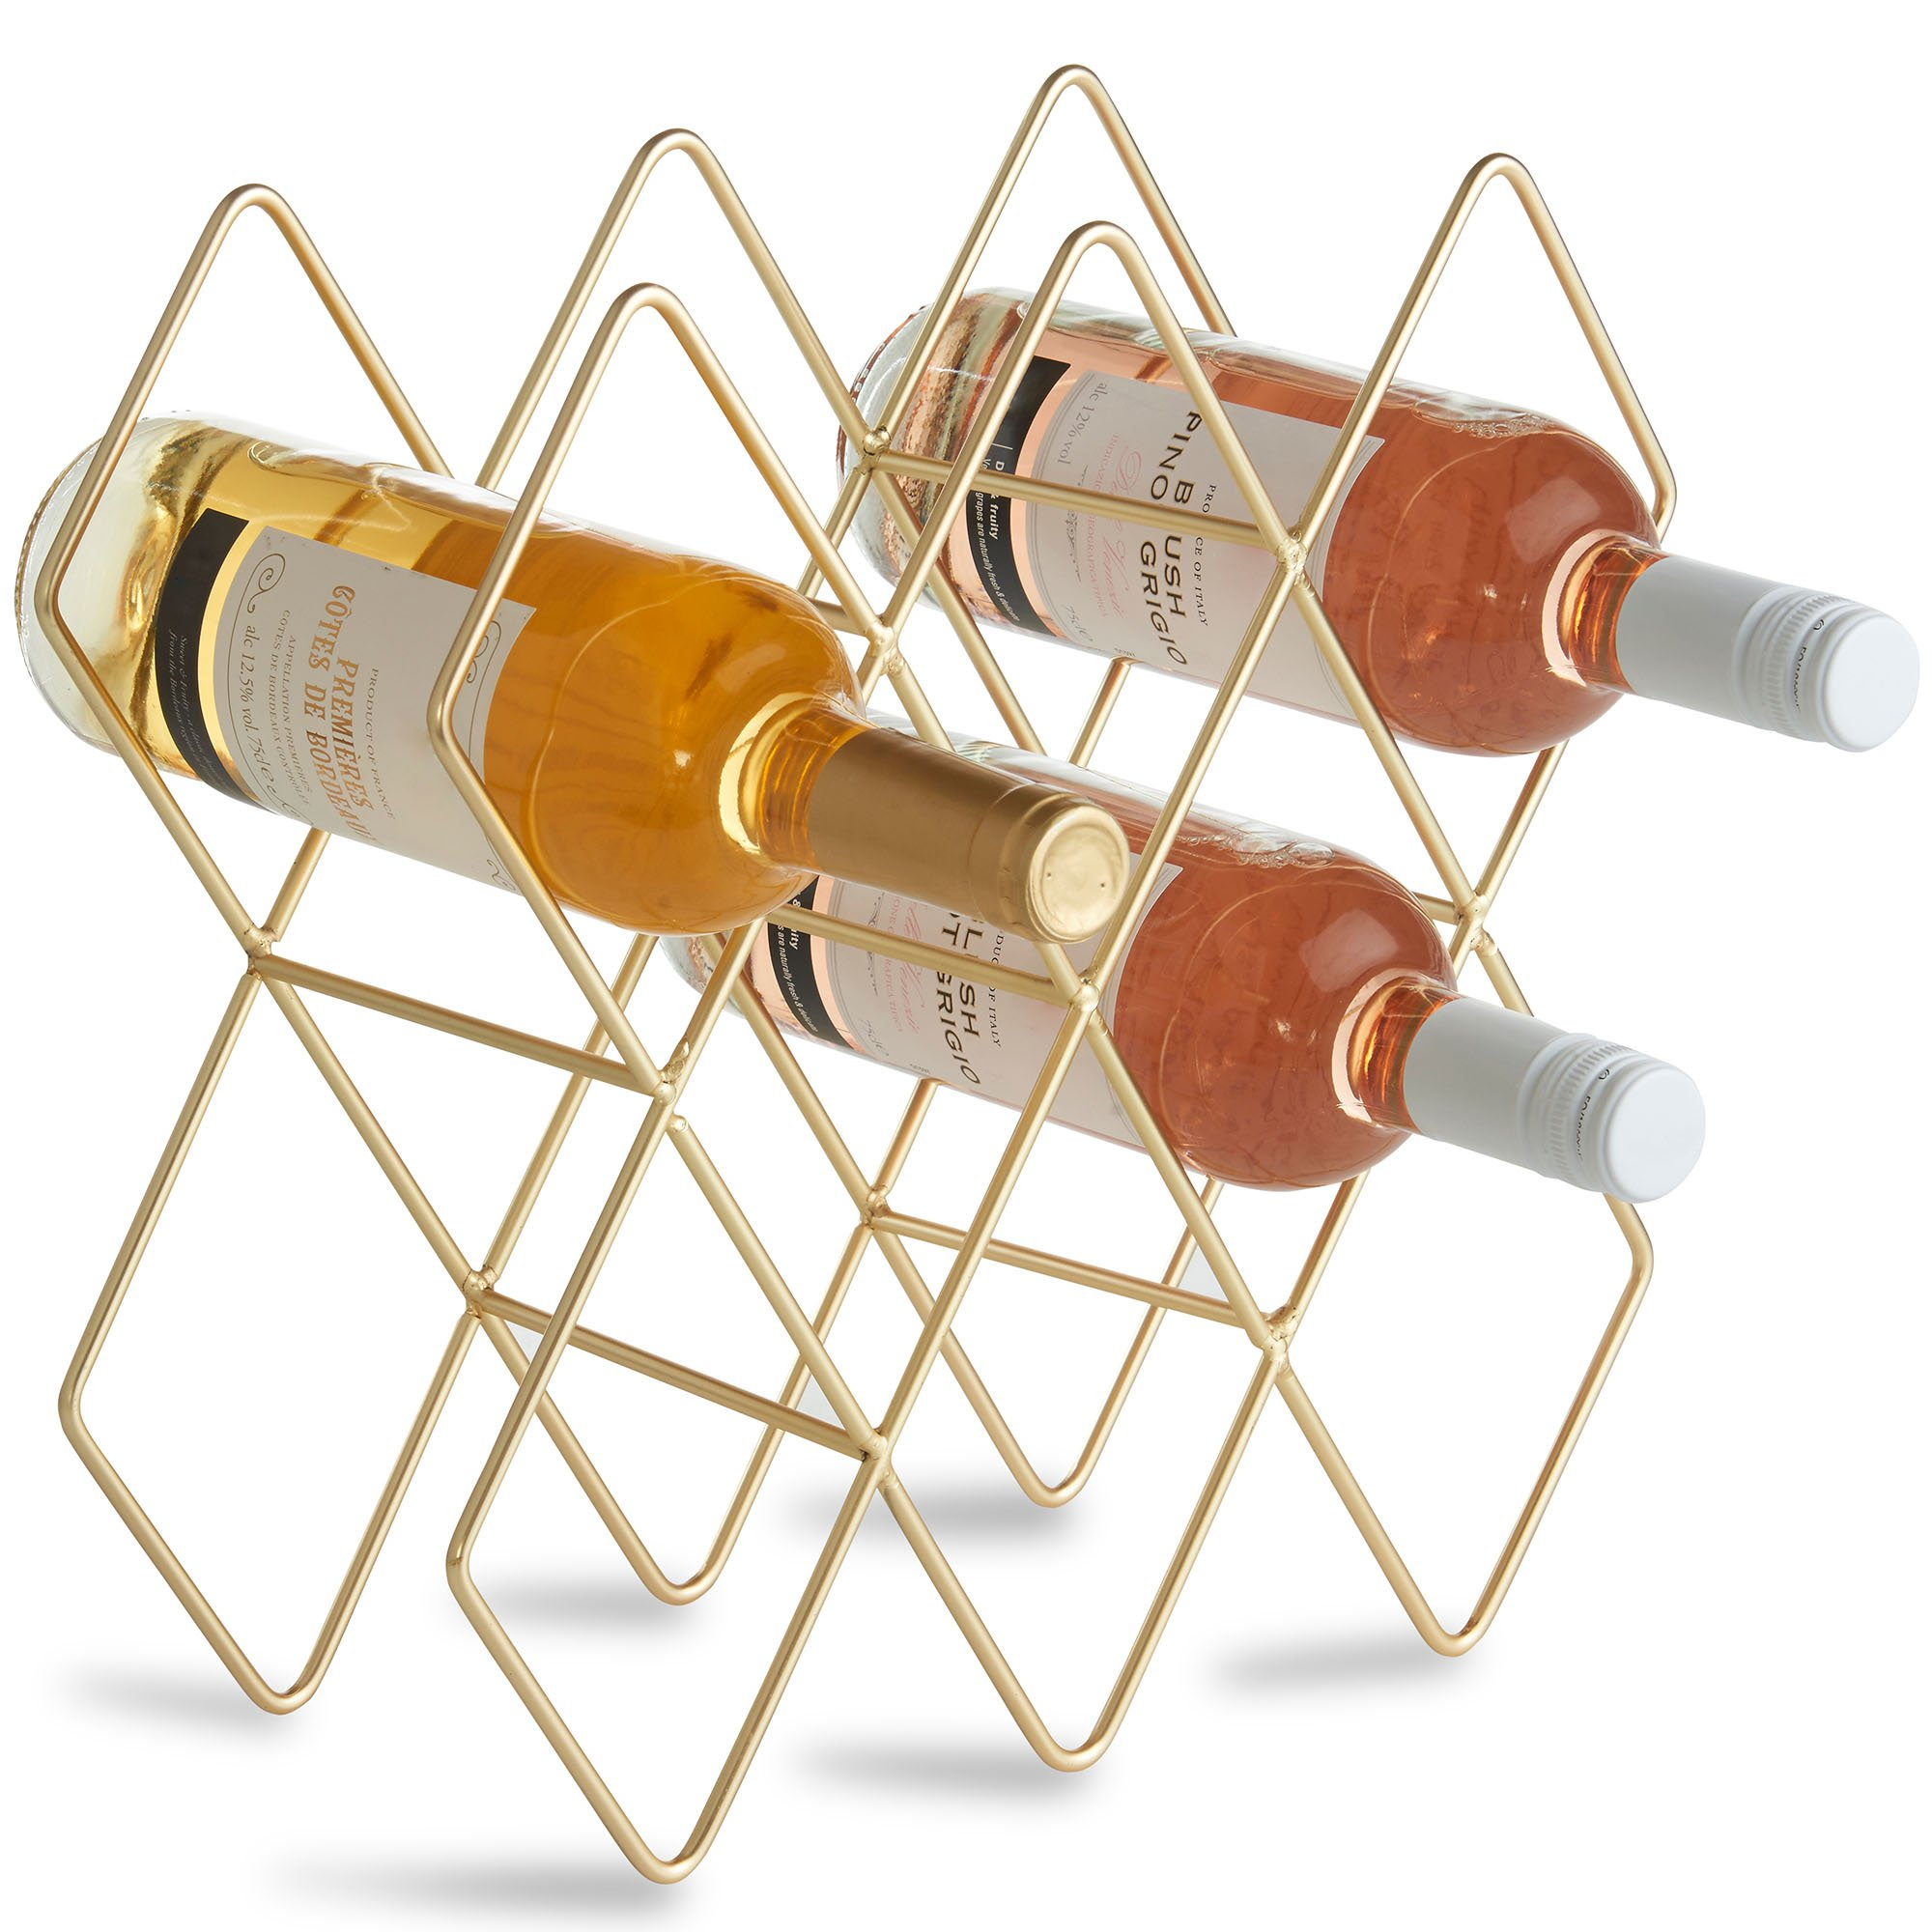 VonShef 8 Wine Bottle Wine Rack, Freestanding Holder, Shelves, Countertop Storage – Metal Brushed Gold and Geometric Design for Red and White Wine